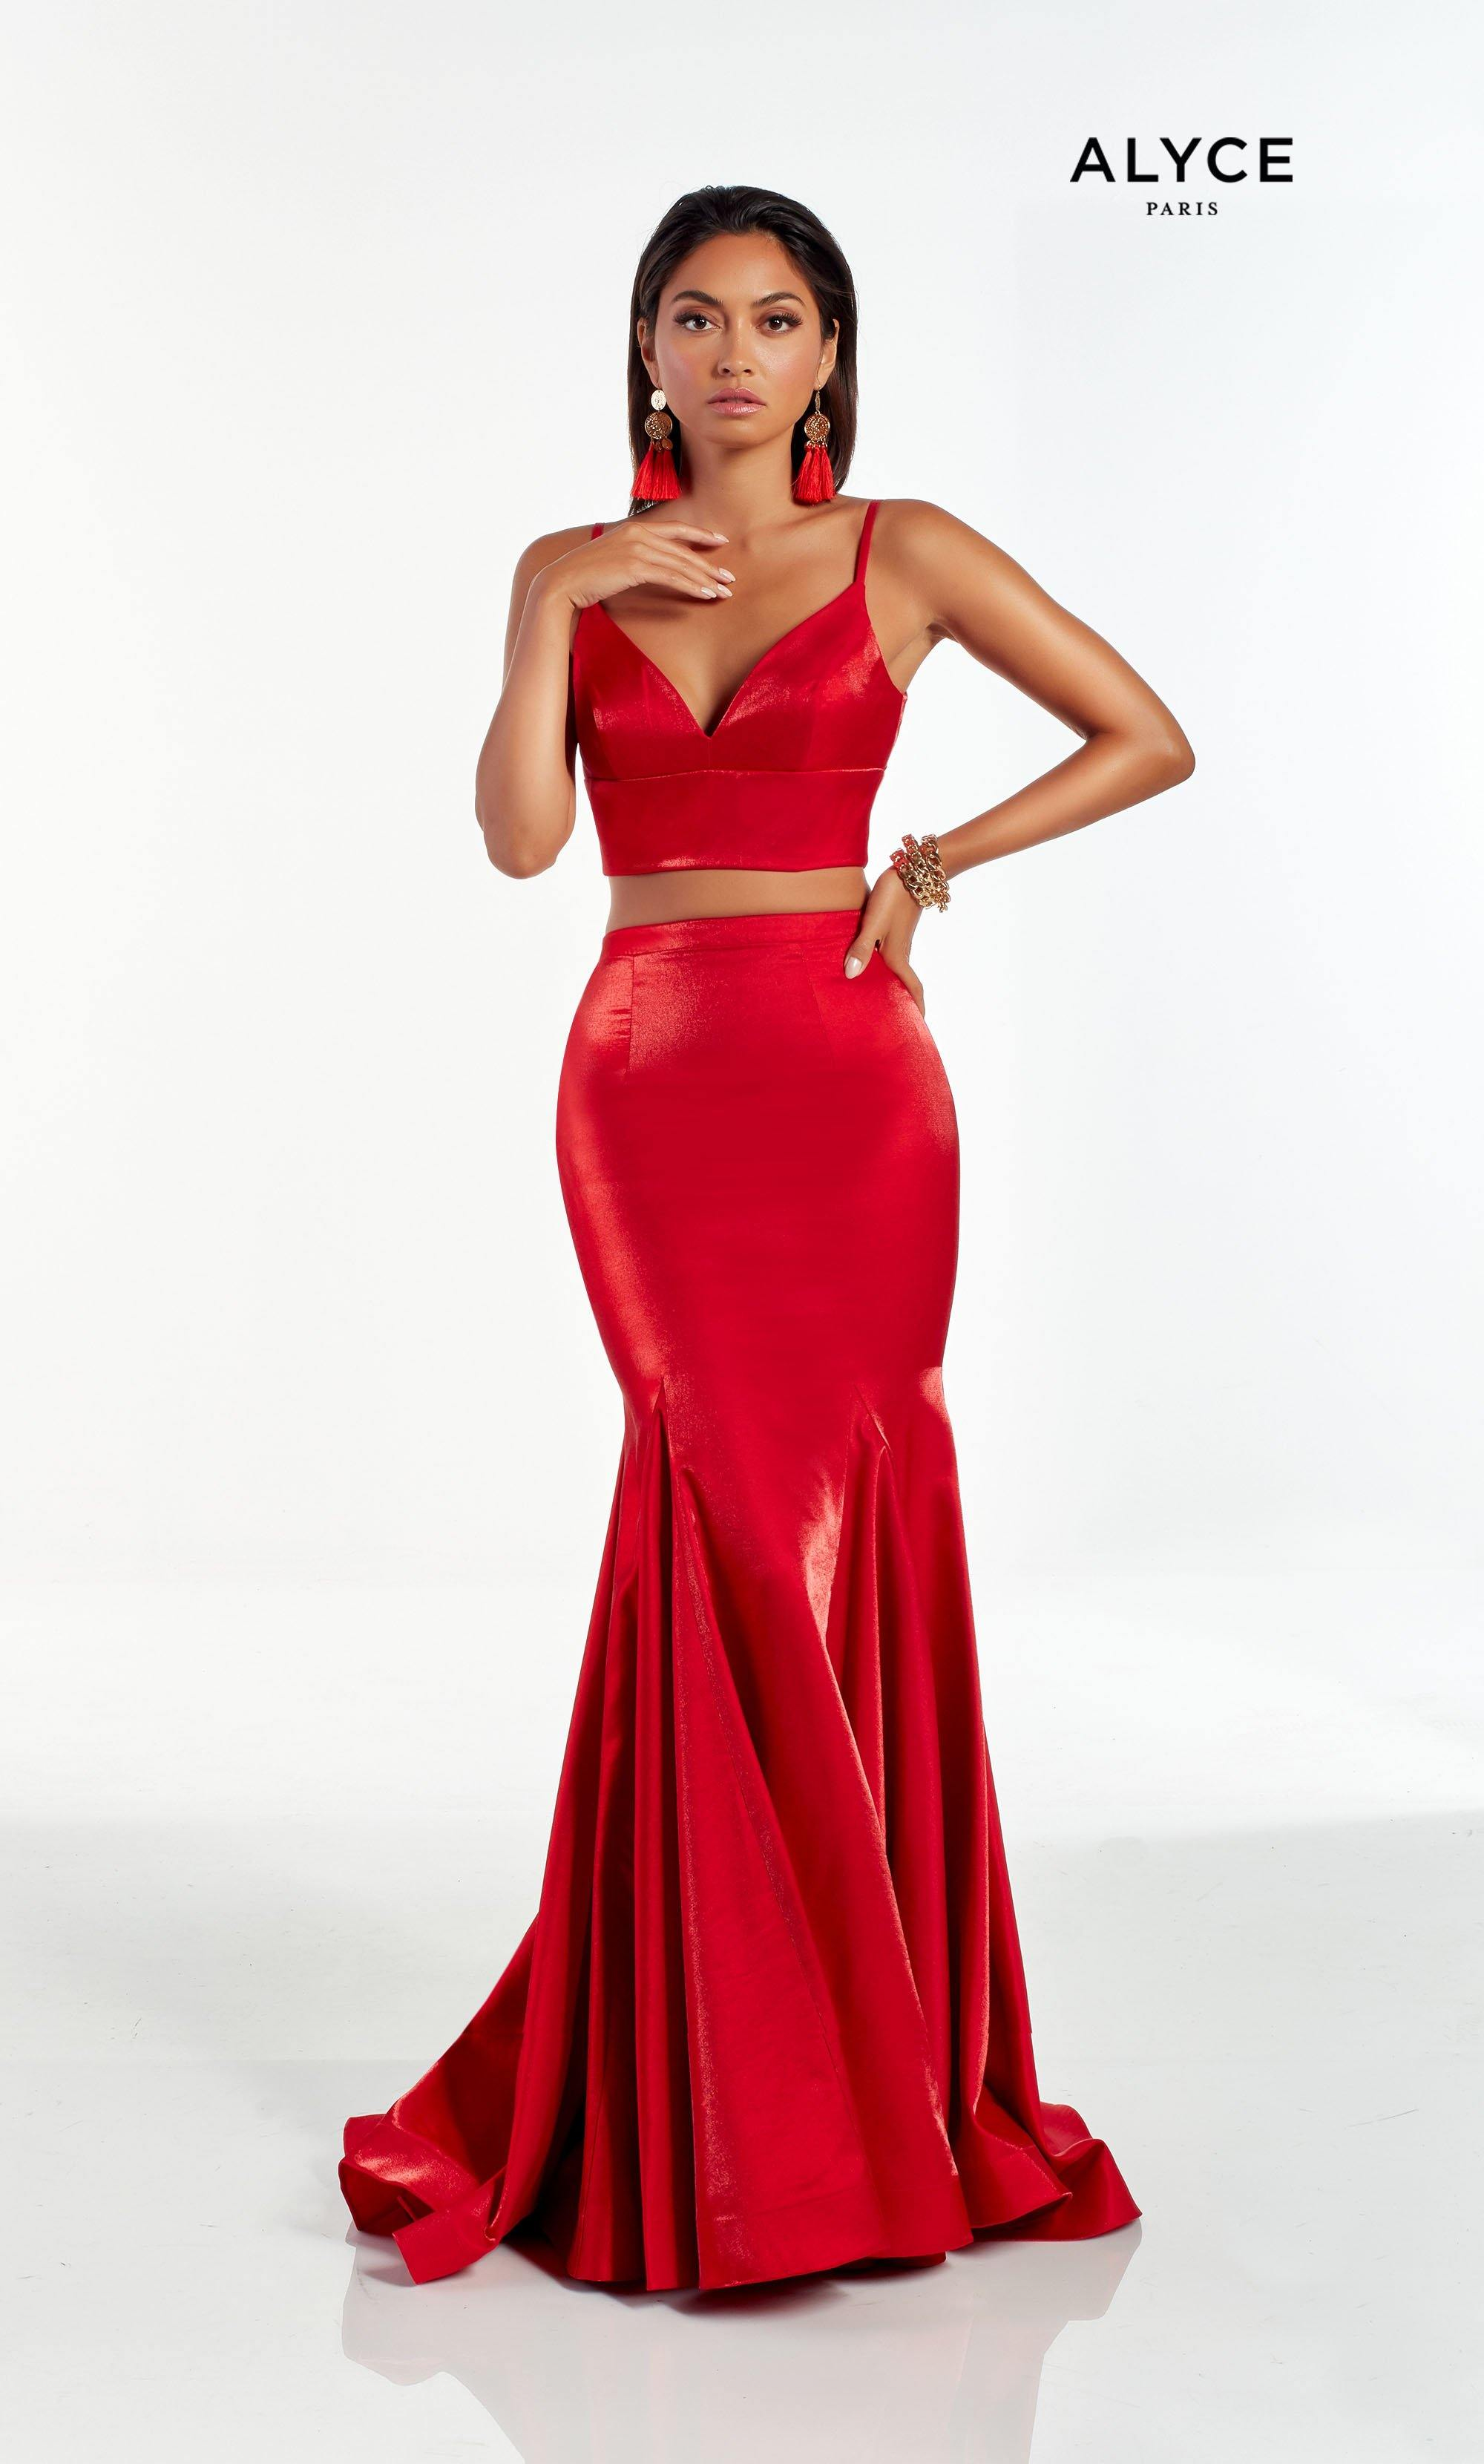 Red shimmer satin two piece formal dress with a V neckline